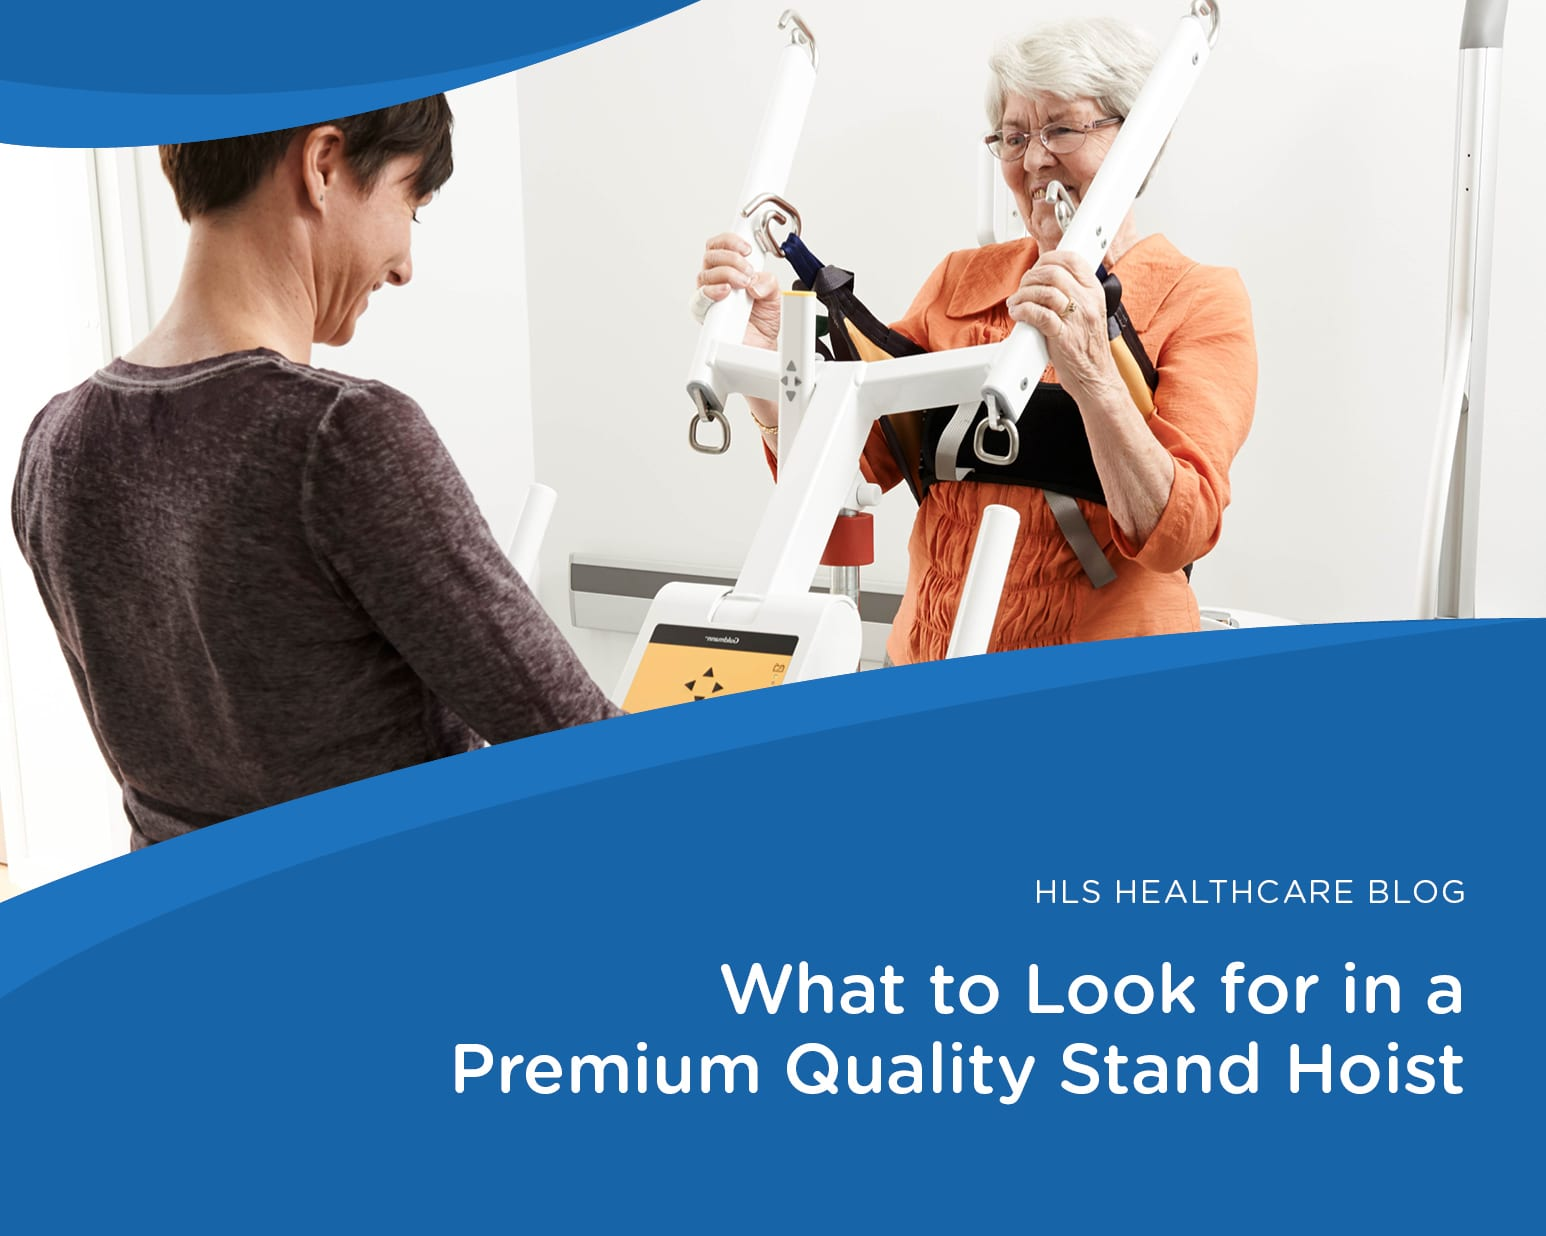 What to Look for in a Premium Quality Stand Hoist